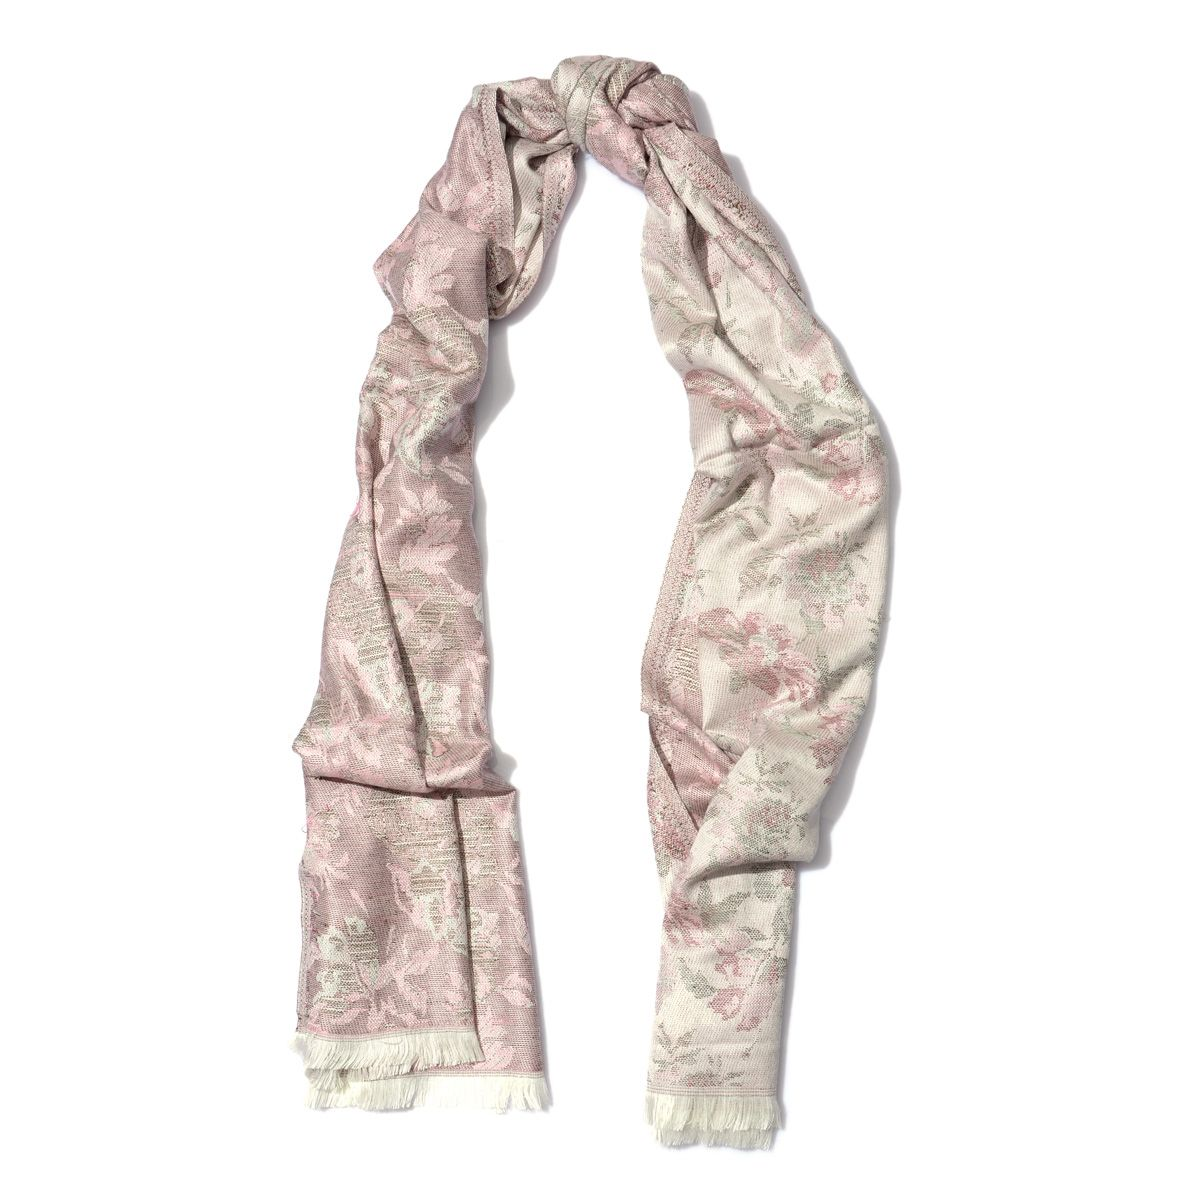 J Francis - White with Pink Flower Motif 100% Viscose Scarf (71x28 in)